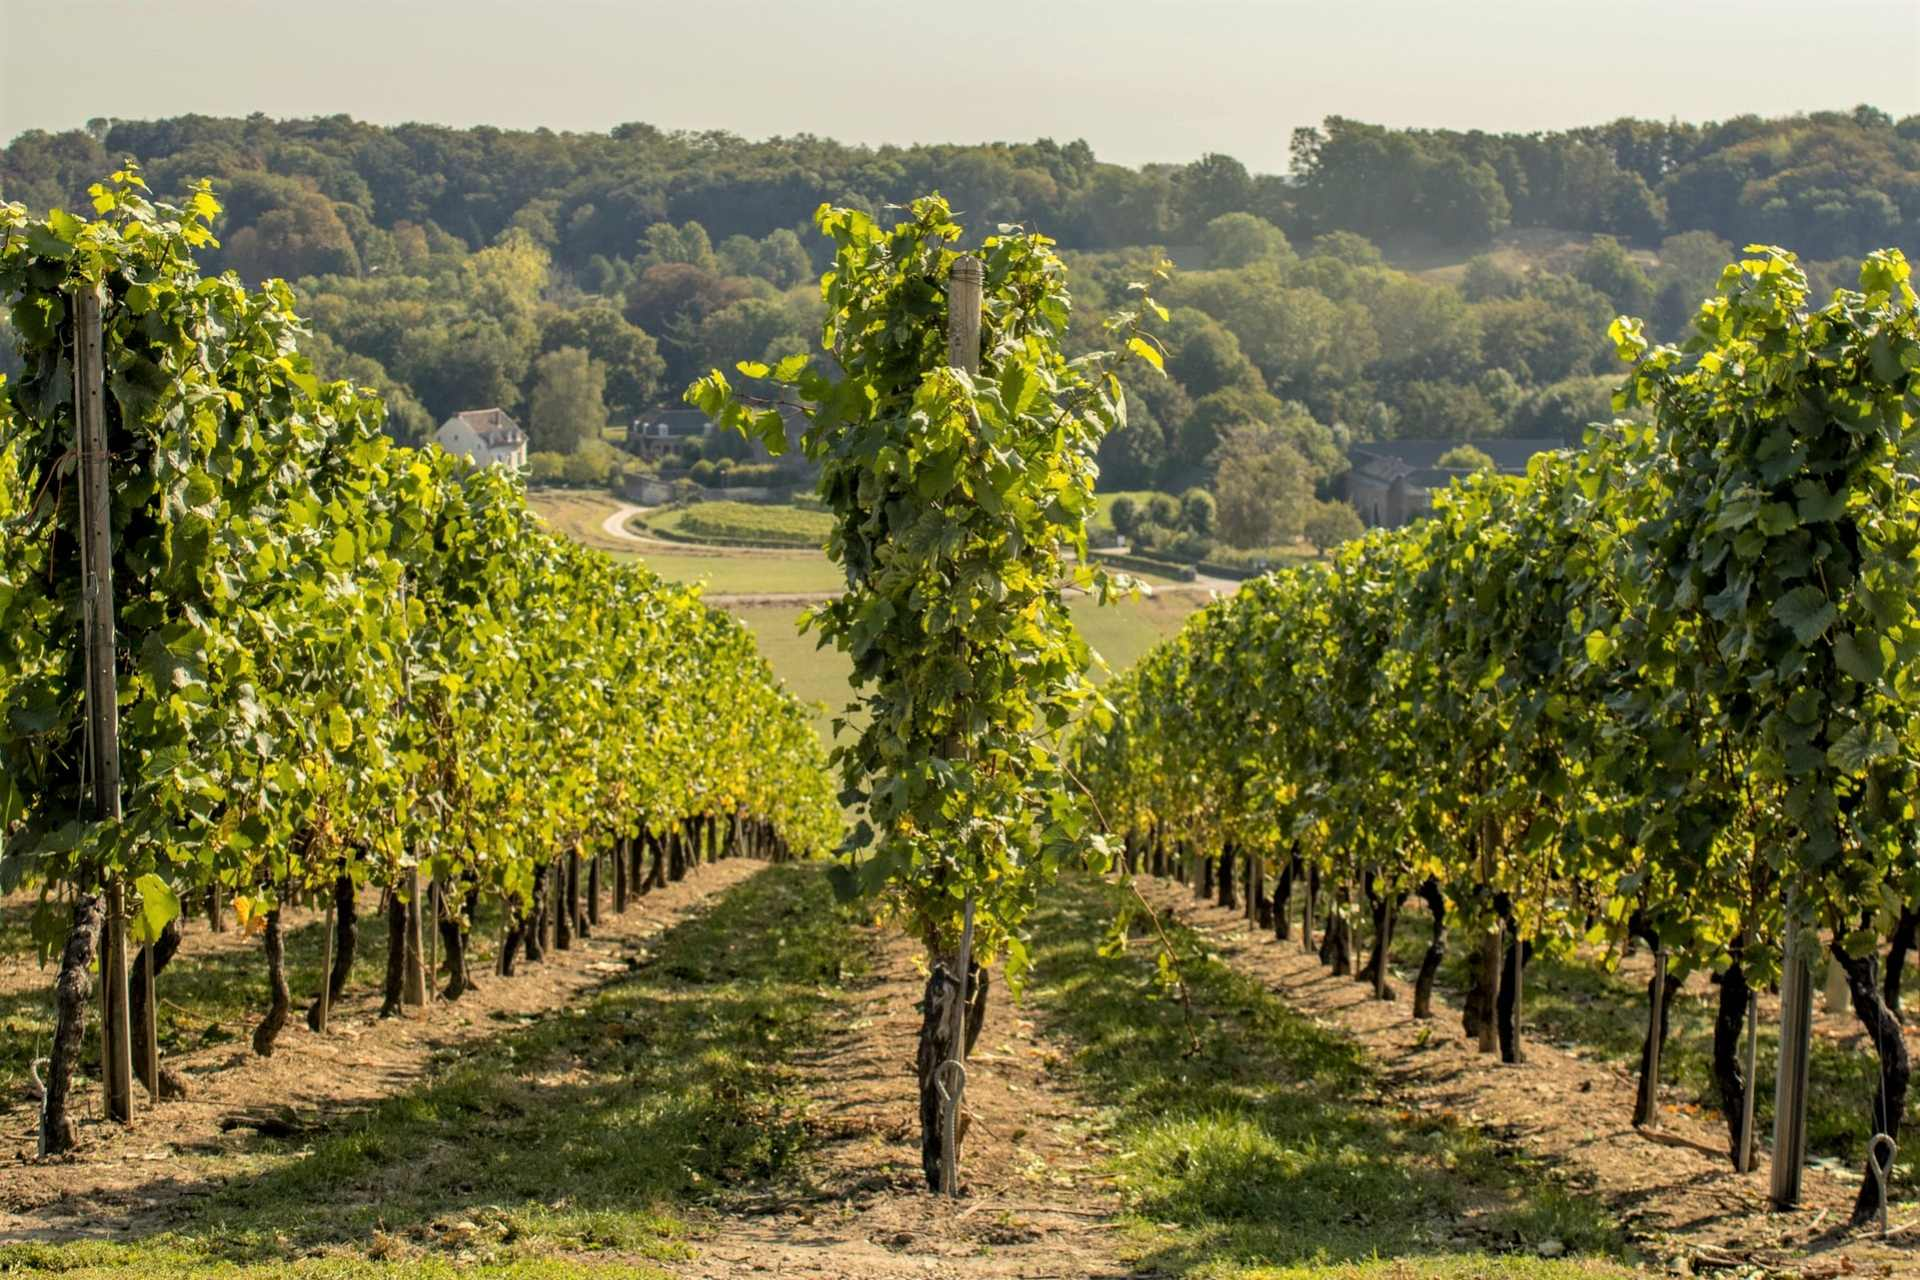 trees-going-down-hill-in-vineyard-winery-limburg-hills